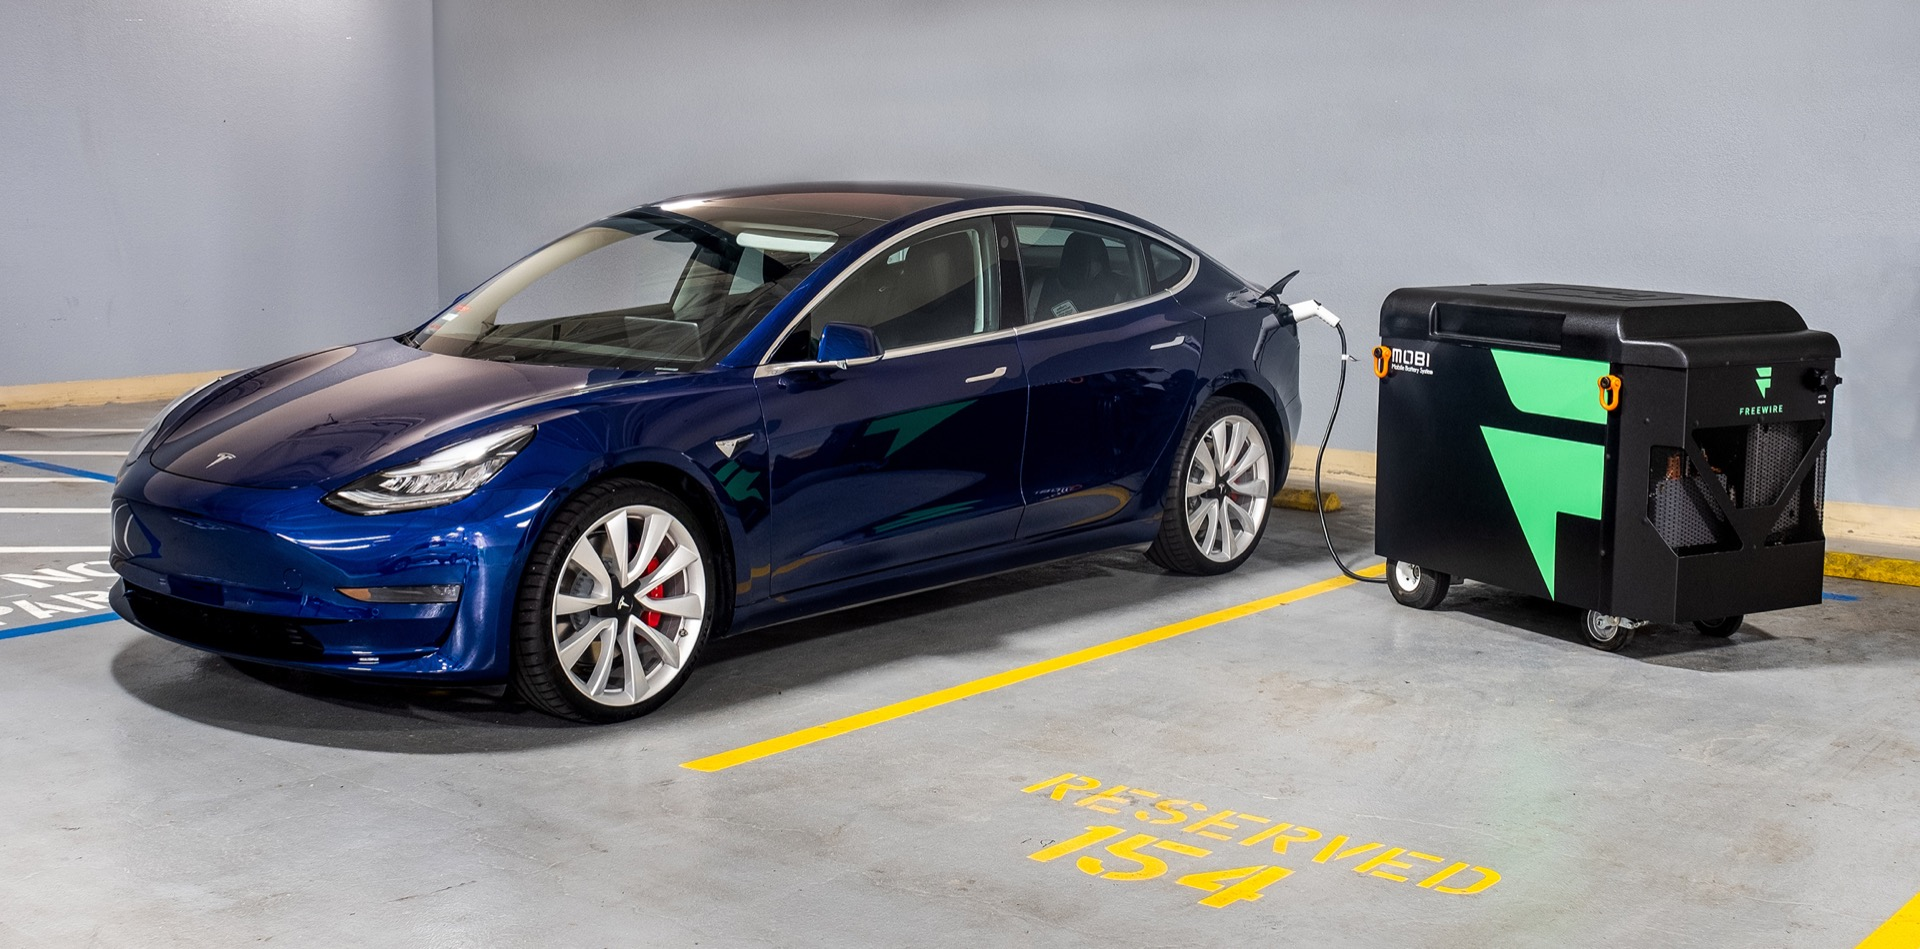 Mobile-charging solutions can help fight the new face of EV range anxiety